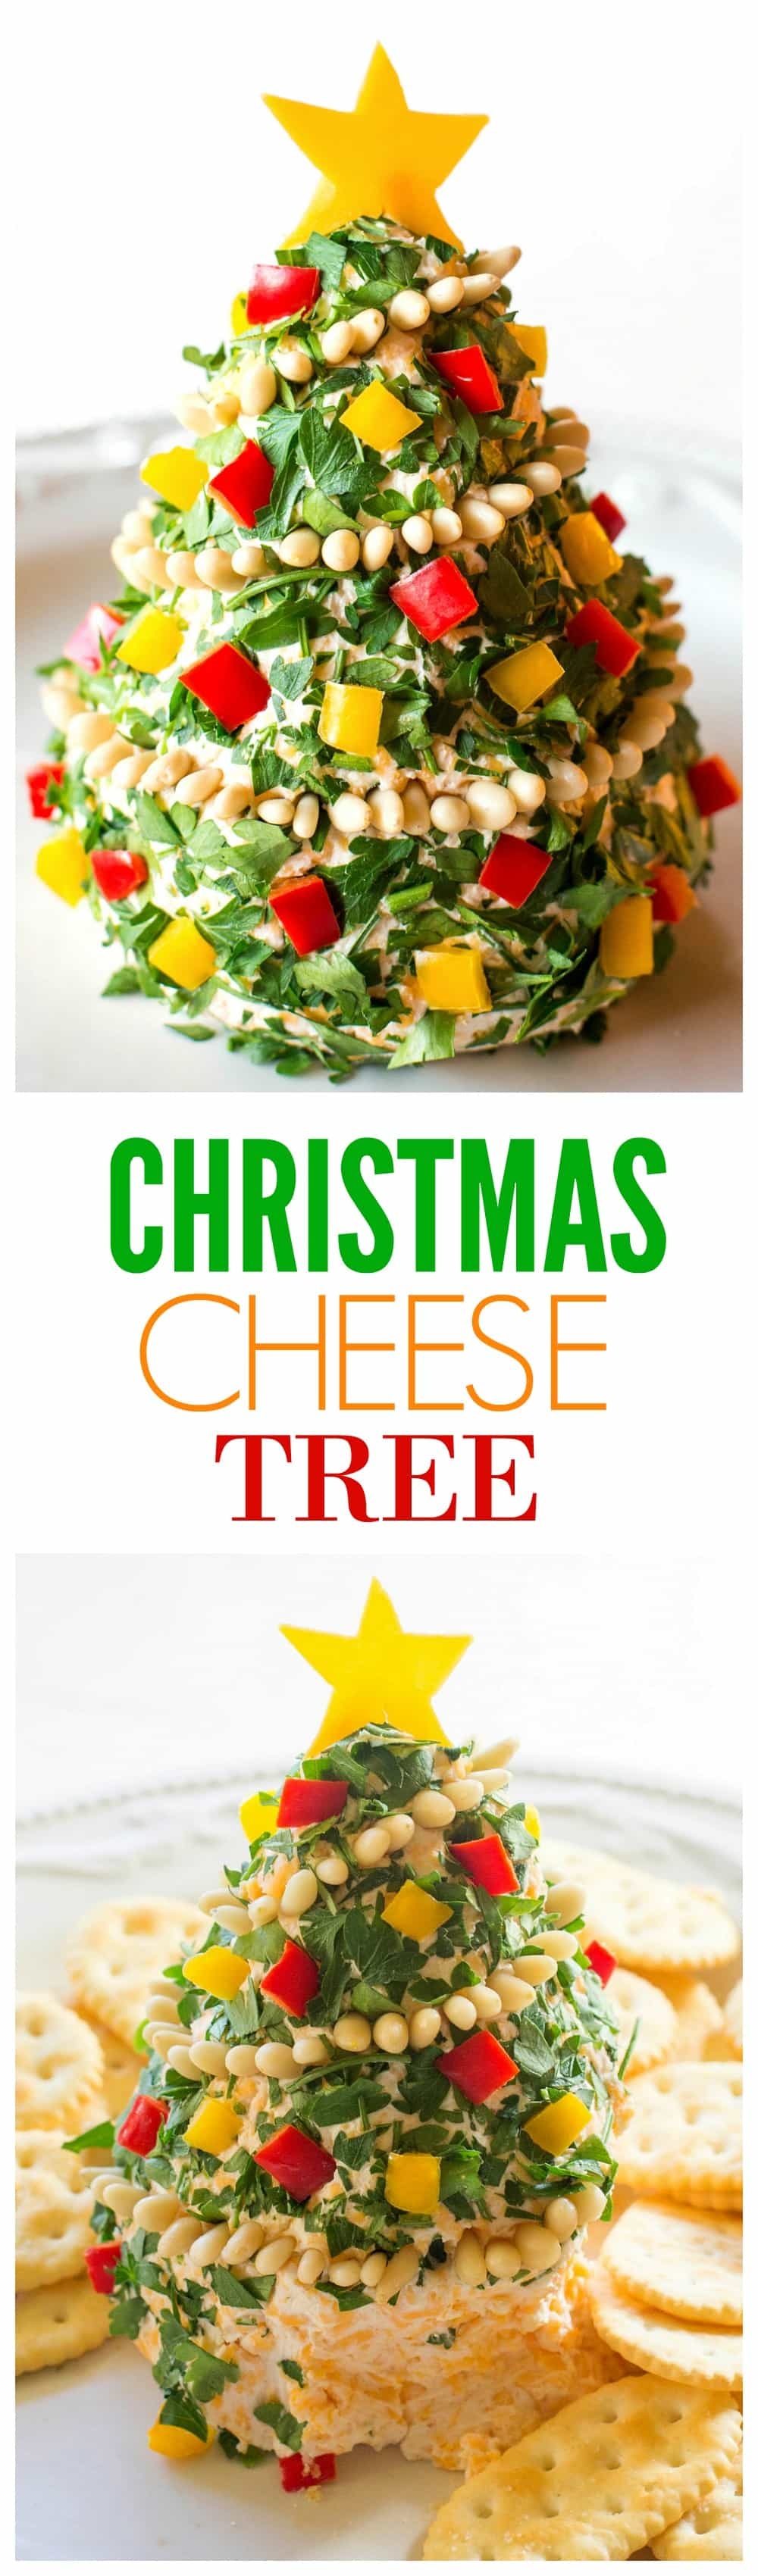 Christmas Cheese Tree - super simple yet impressive cheese ball shaped in a tree! the-girl-who-ate-everything.com